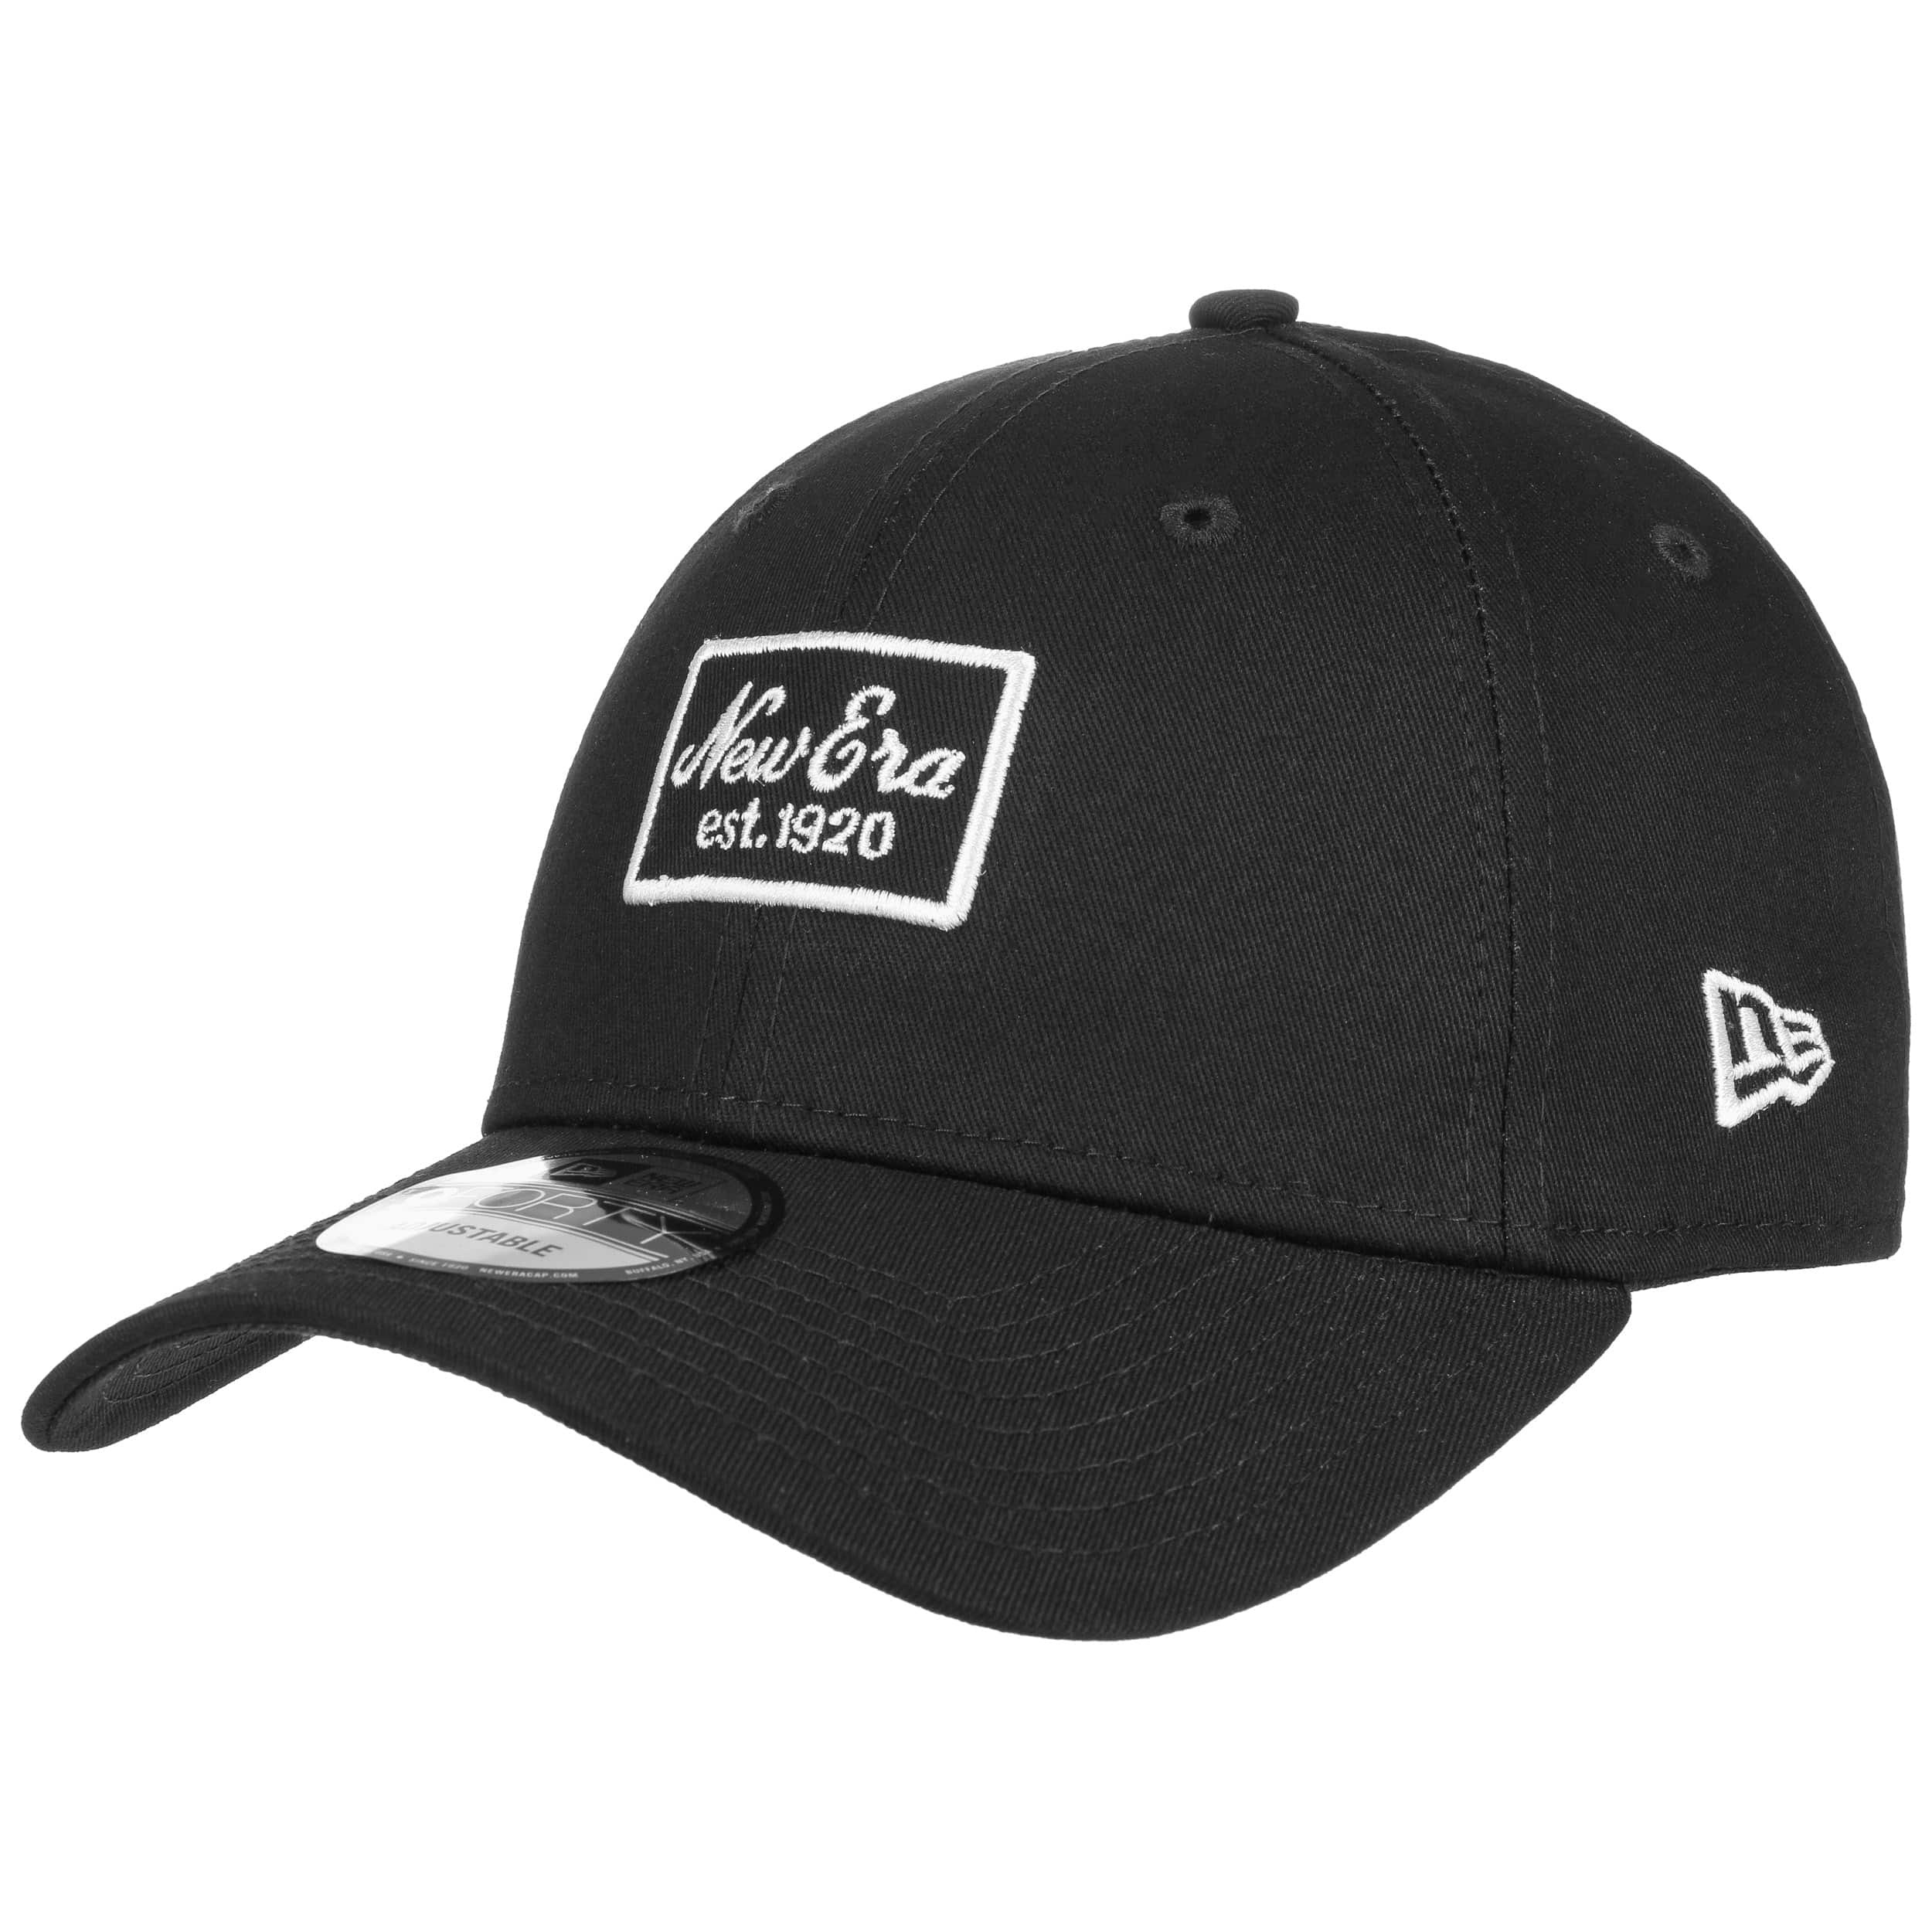 Gorra 9Forty Script Patch by New Era - Gorras - sombreroshop.es 1136ceb8382